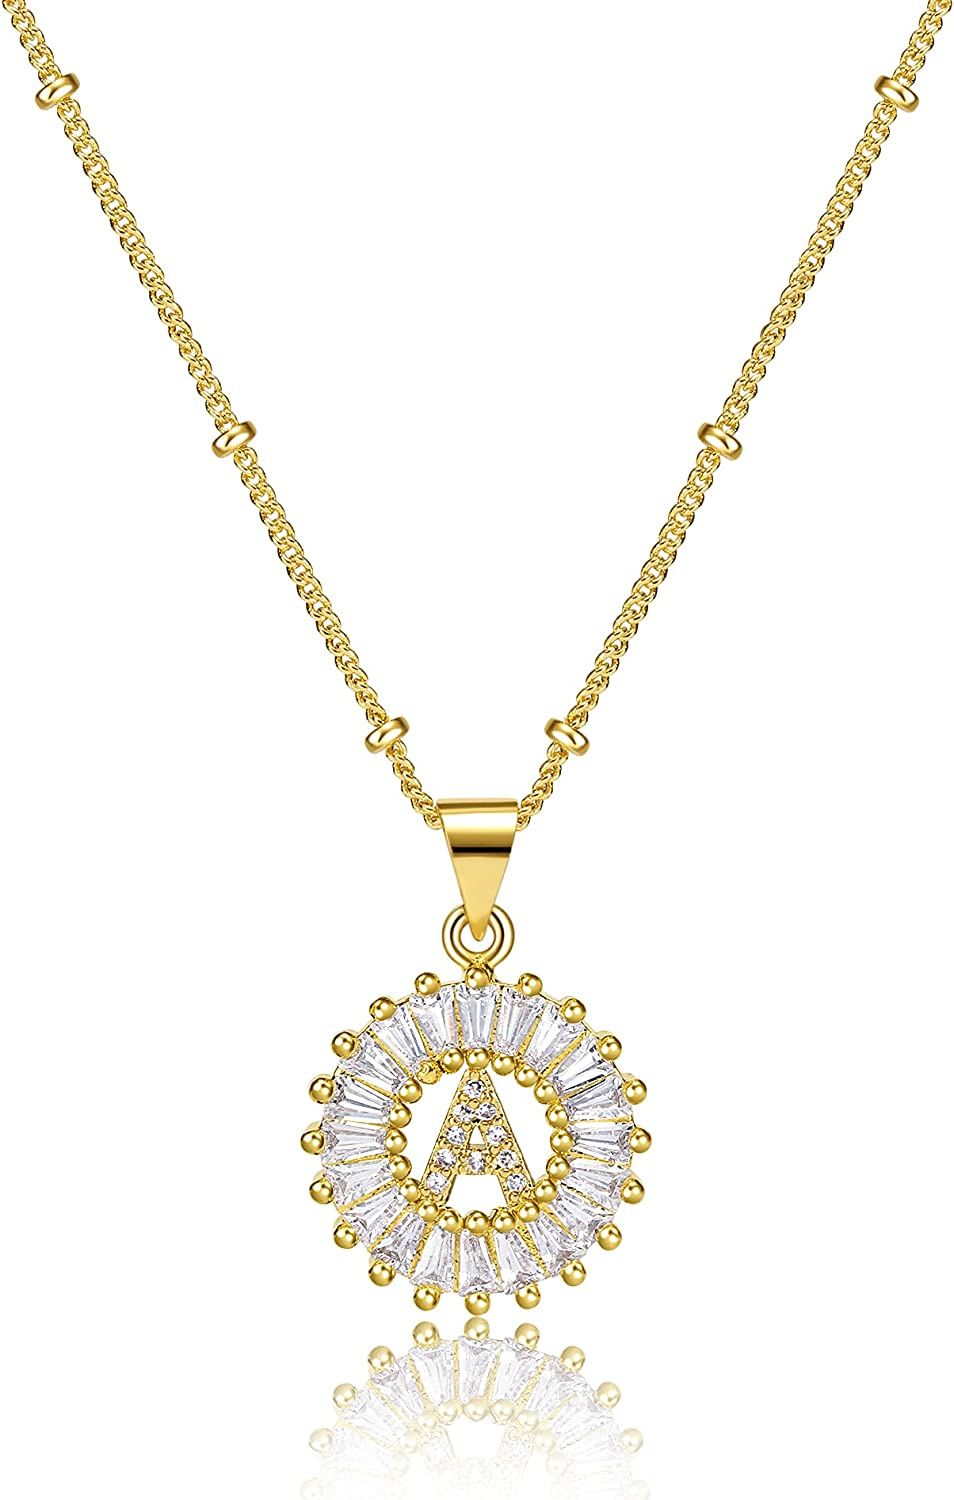 Initial A-Z Letter Pendant Necklace Choker for Girlfriend Women & Girls, BYIA Cubic Zirconia Capital Letter Drop Necklace Gold Plated Cooper Chain 18inch